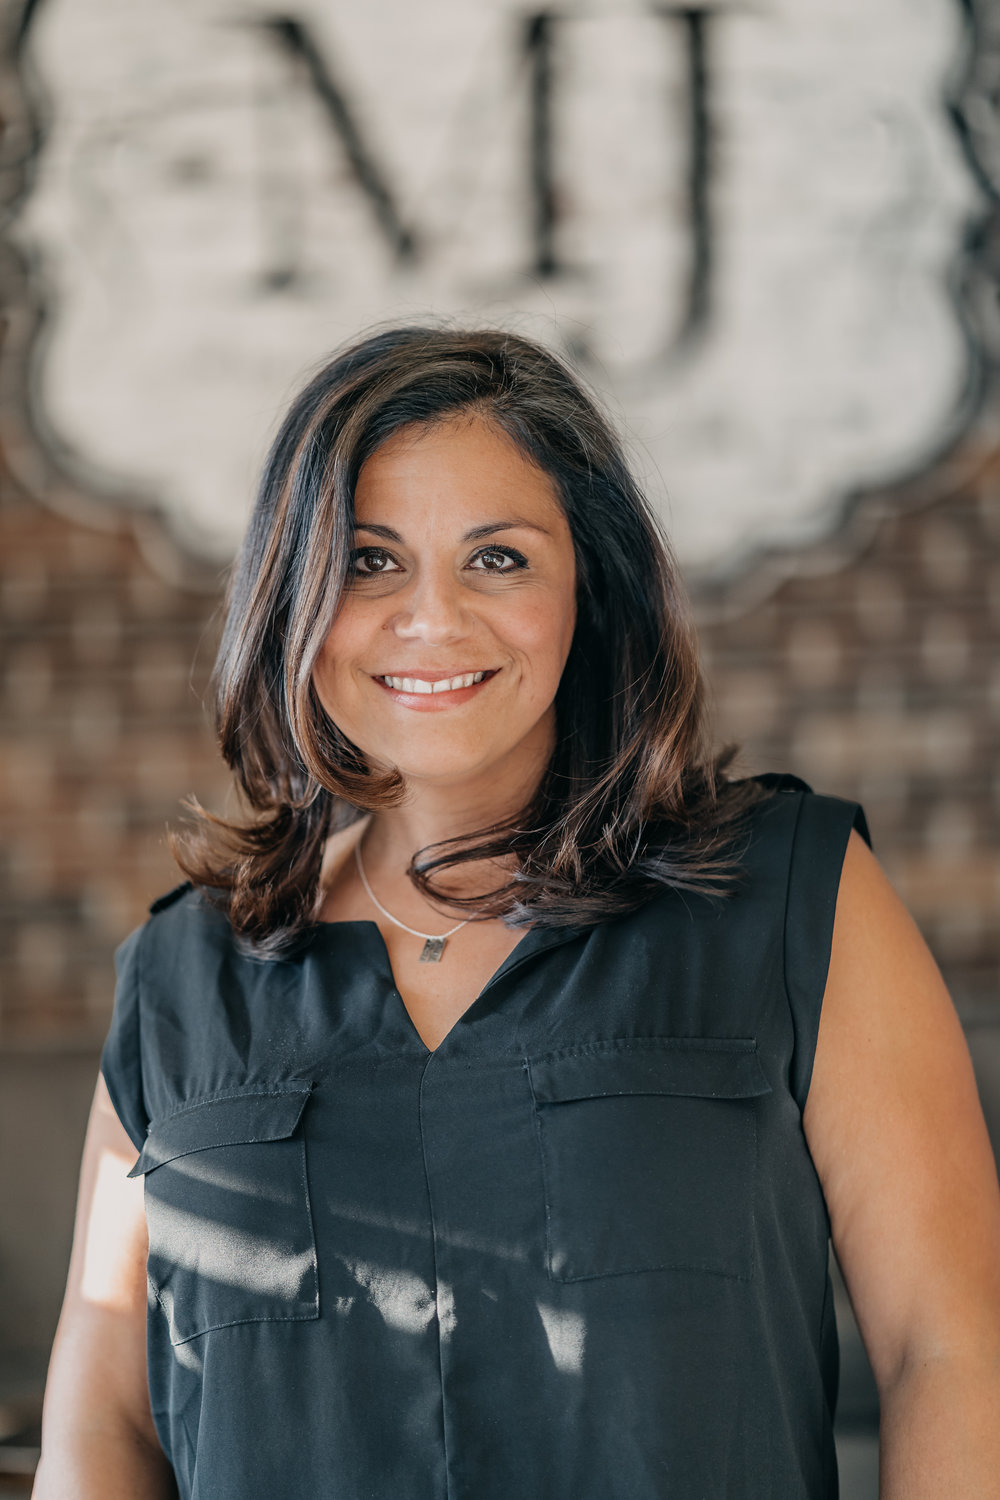 Neri - Salon ManagerNeri is our Salon Manager. She's always there to greet you when you come in. She has a genuine happy and warm disposition and she will always make you feel at home the moment you walk through the doors. She's not only knowledgeable about our hair services and products but she is exceptional at guiding our guests through their scheduling process so they receive exactly what they need for an exceptional experience at MJ Hair Studio. Neri is committed to taking excellent care of our guests and staff.